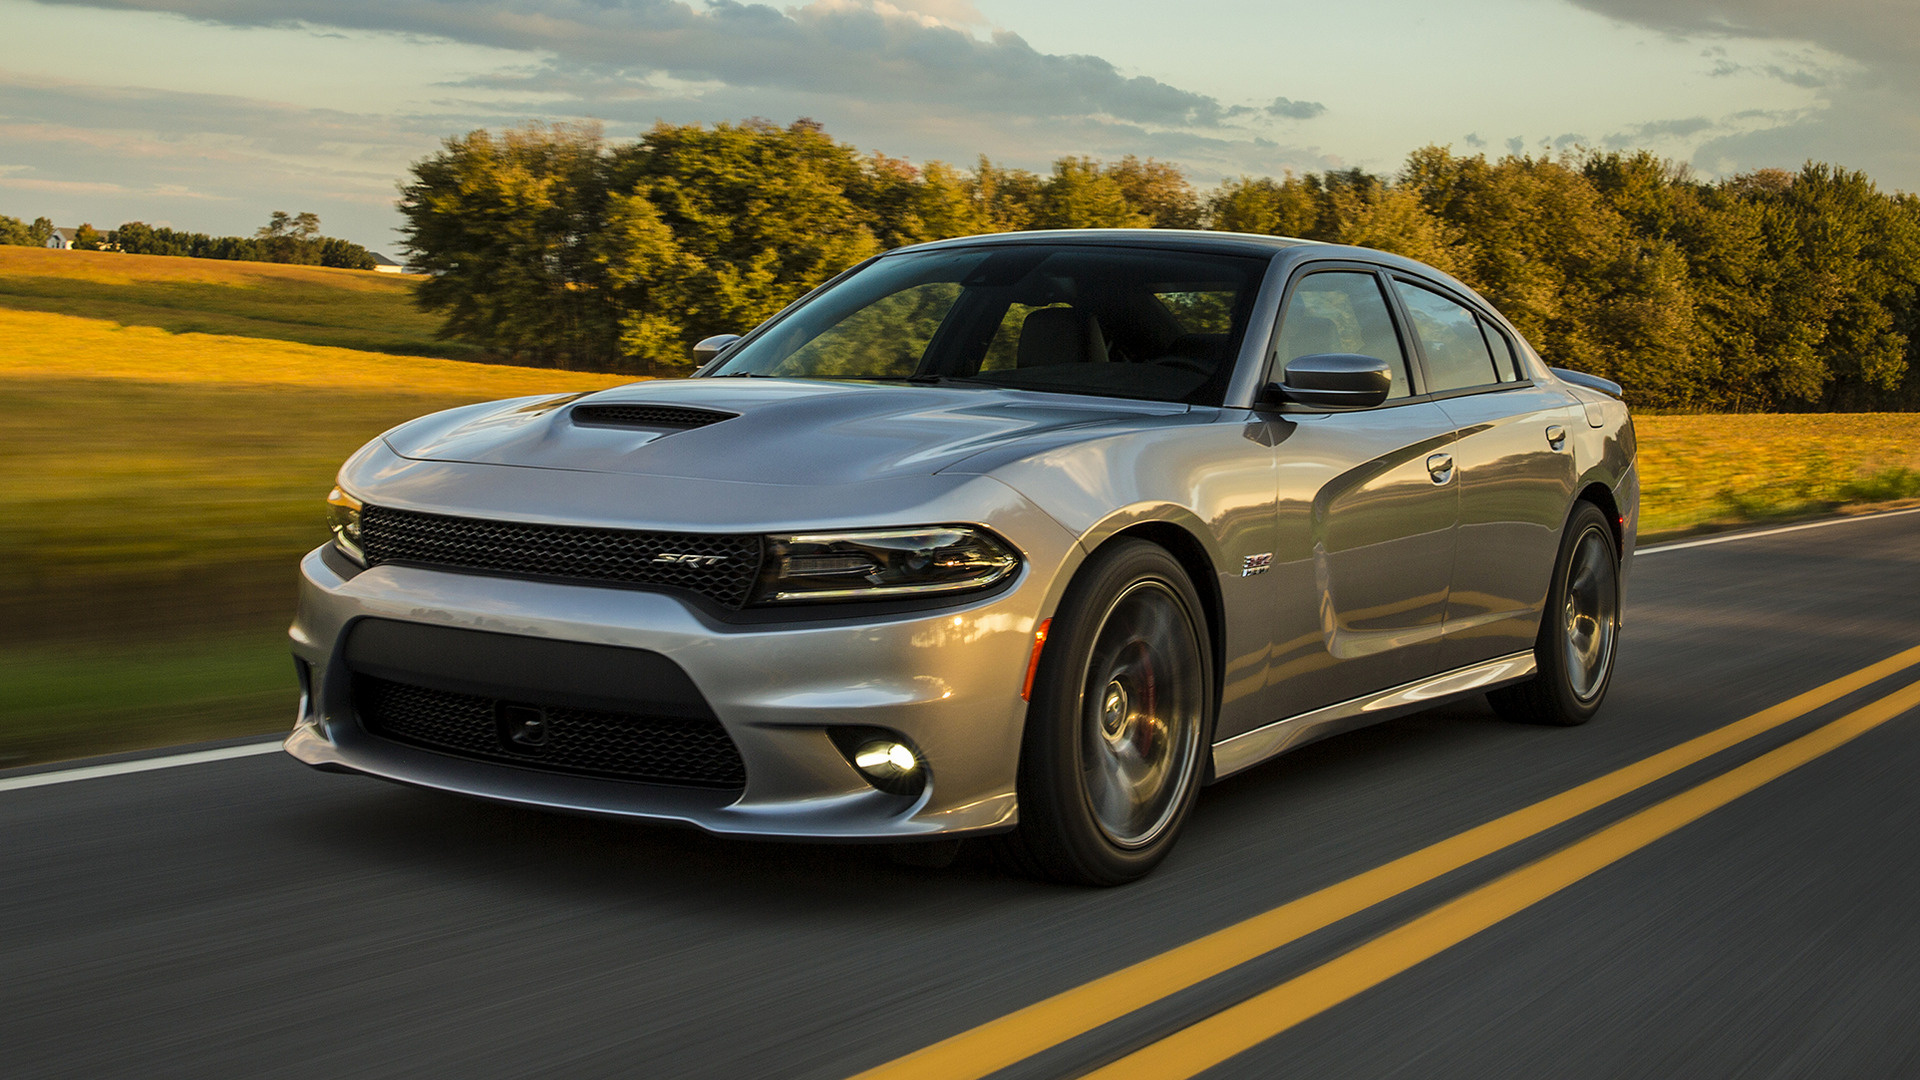 Dodge Charger Srt 392 2015 Wallpapers And Hd Images